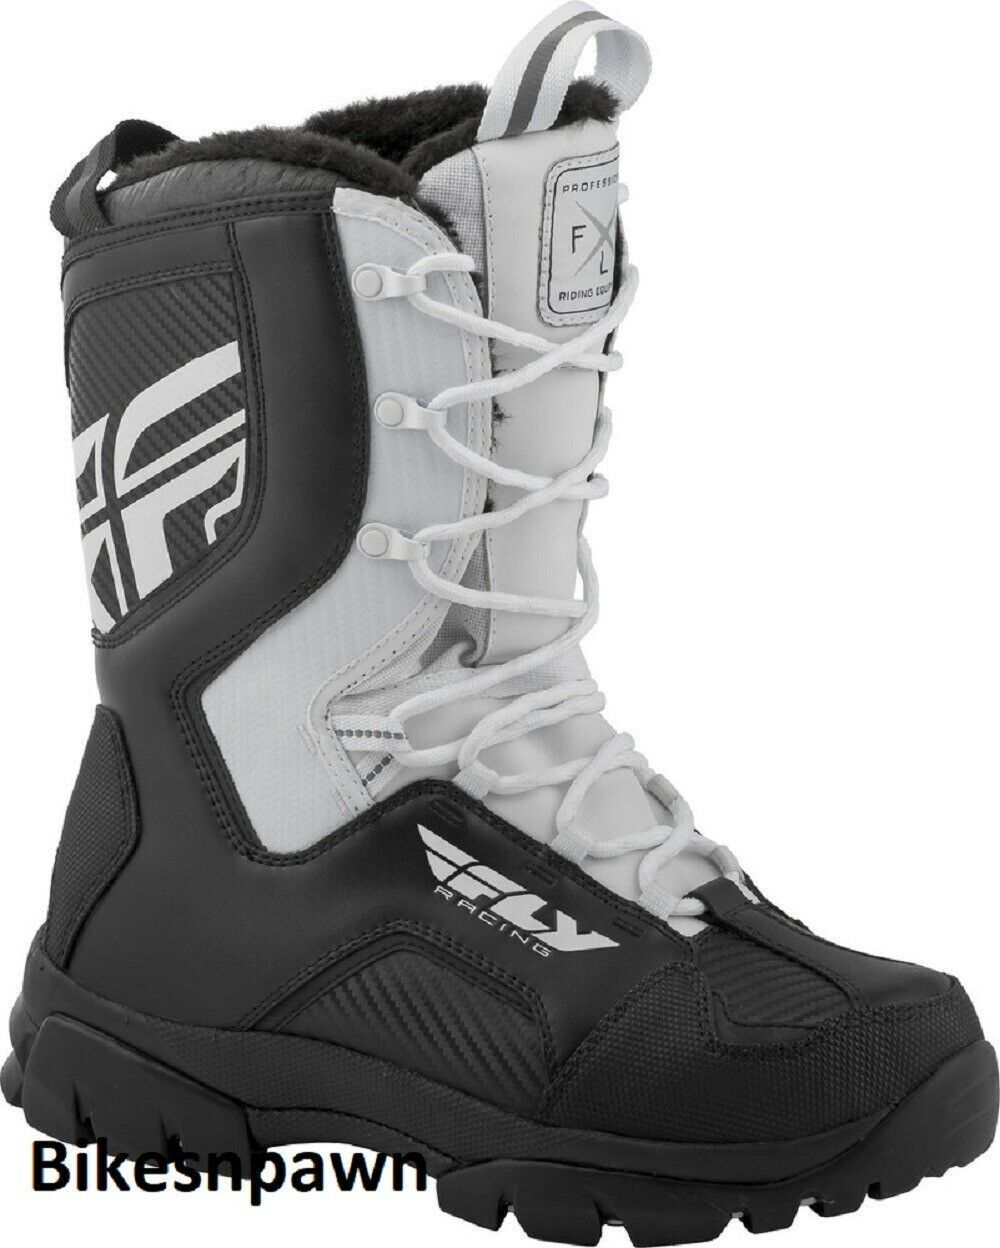 New Mens FLY Racing Marker Black/White Size 9 Snowmobile Winter Snow Boots -40 F